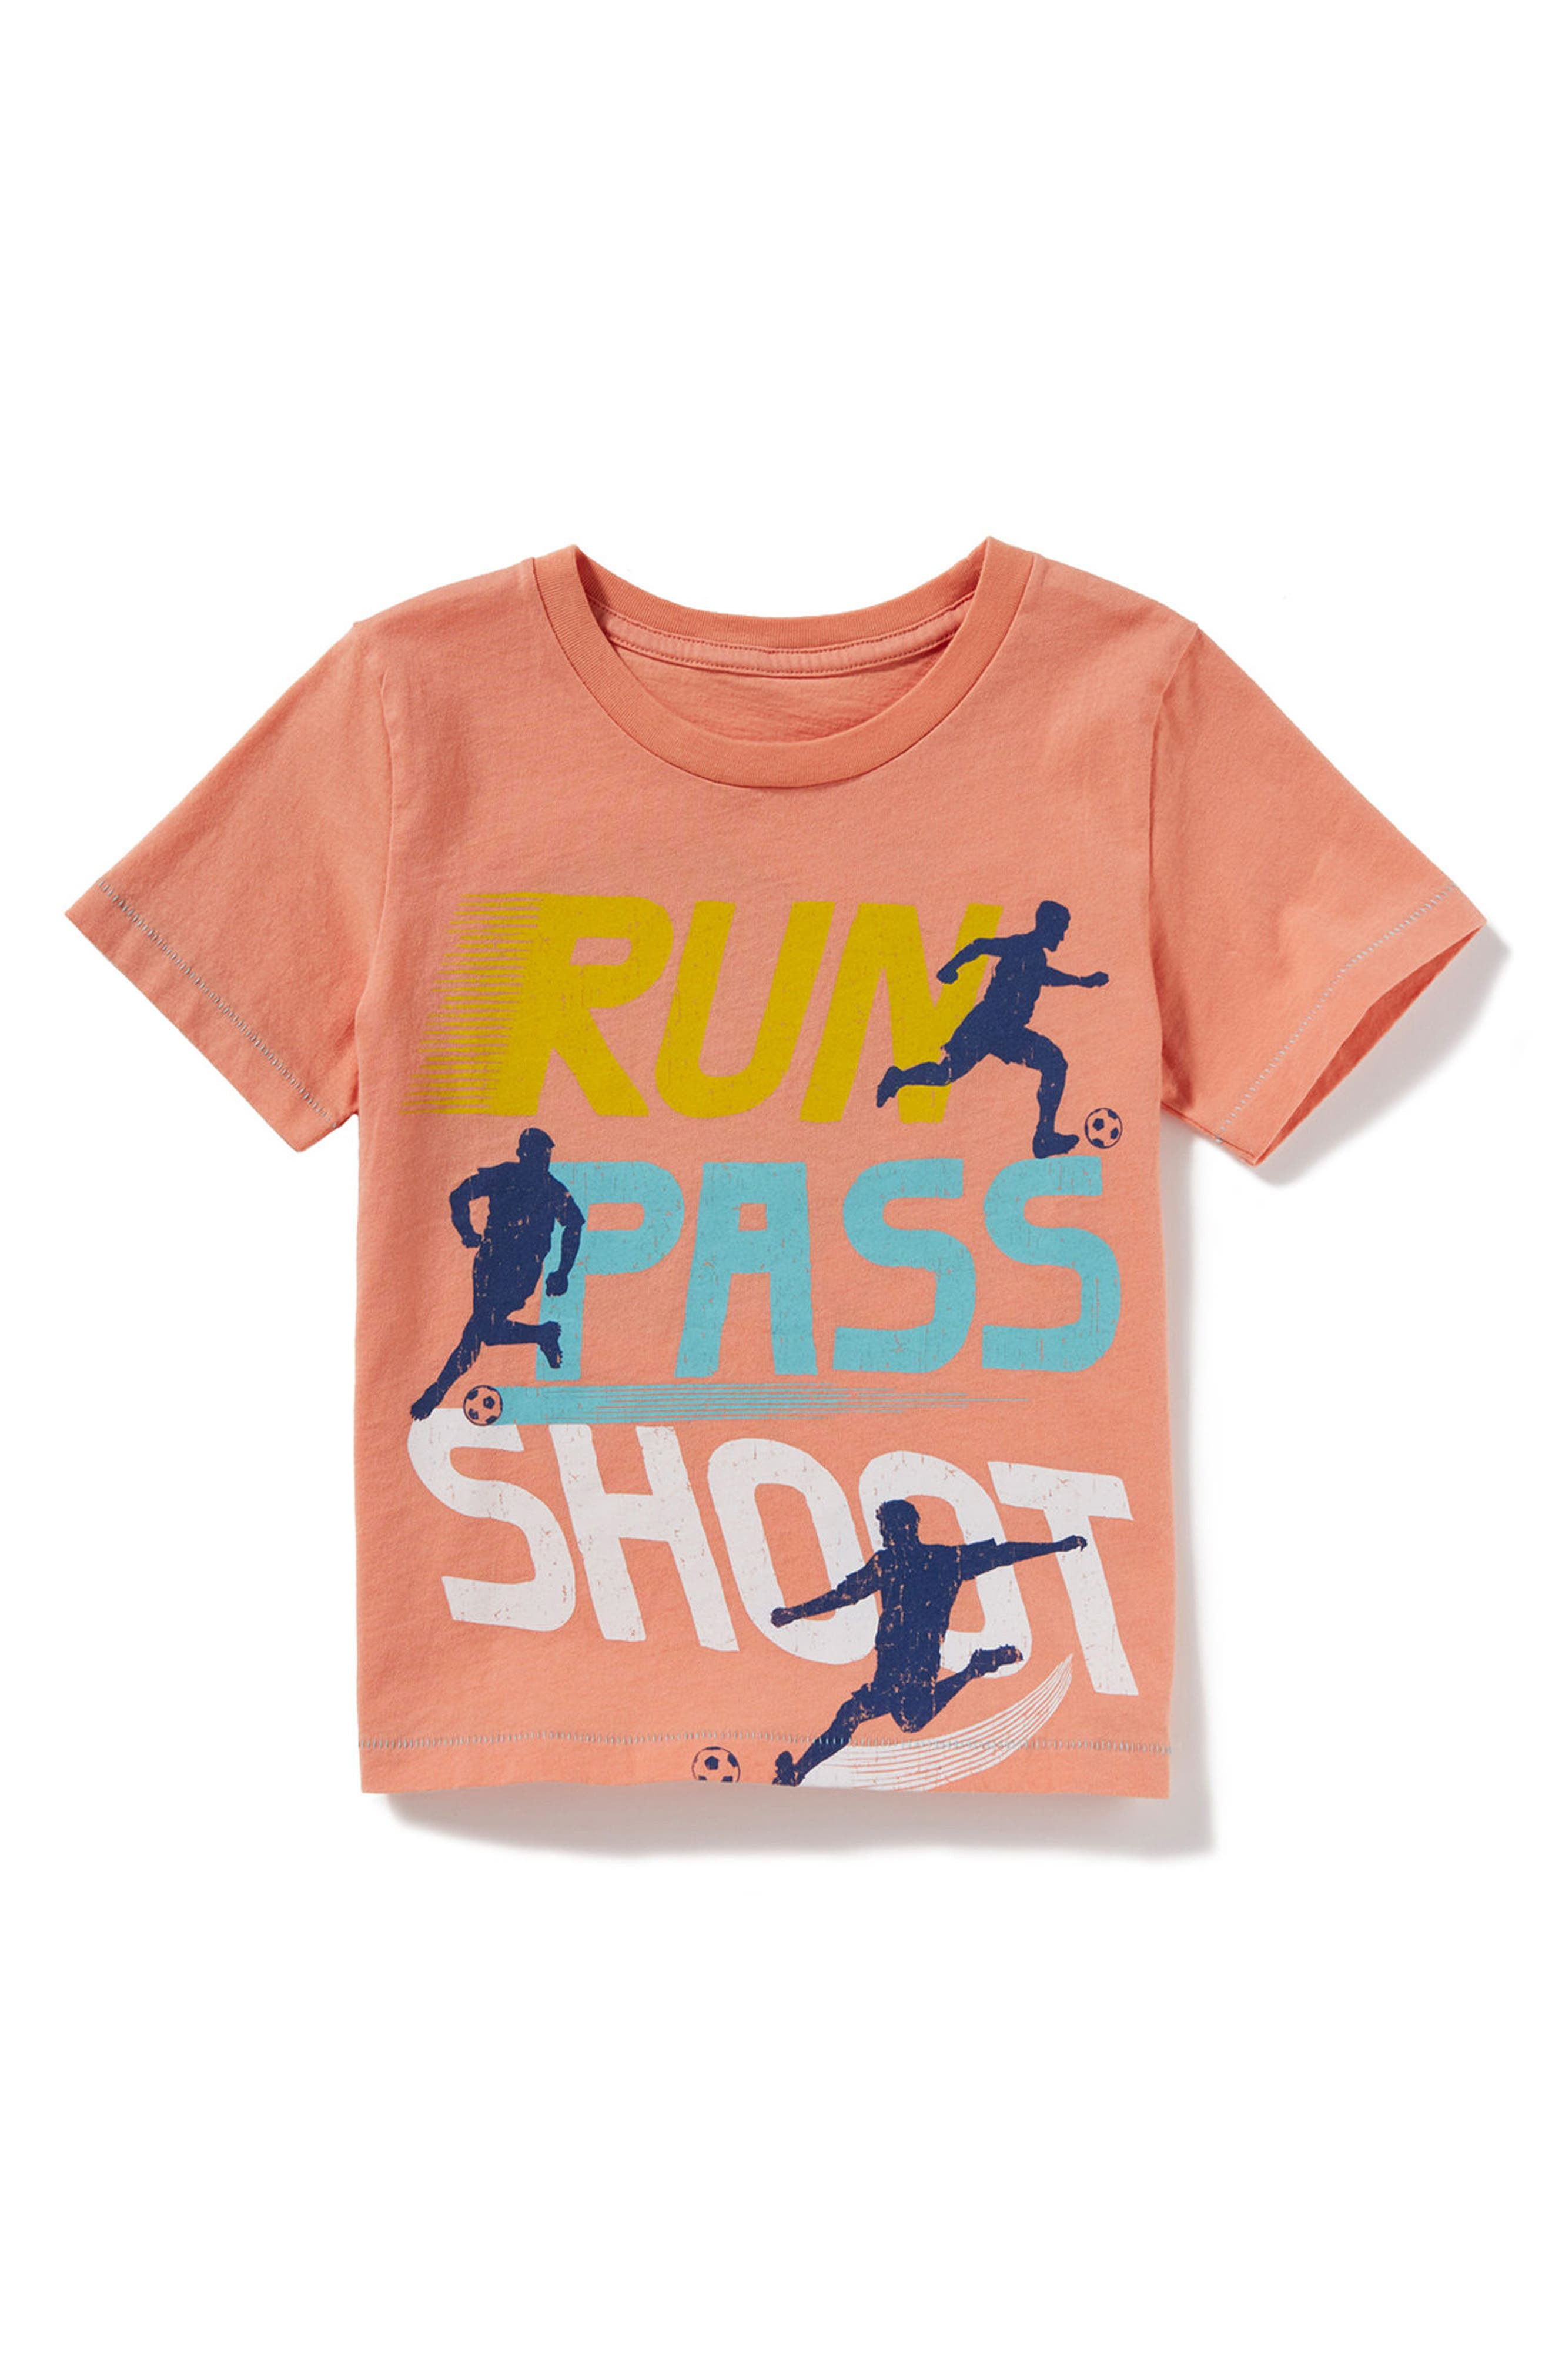 Run Pass Shoot Graphic T-Shirt,                             Main thumbnail 1, color,                             950